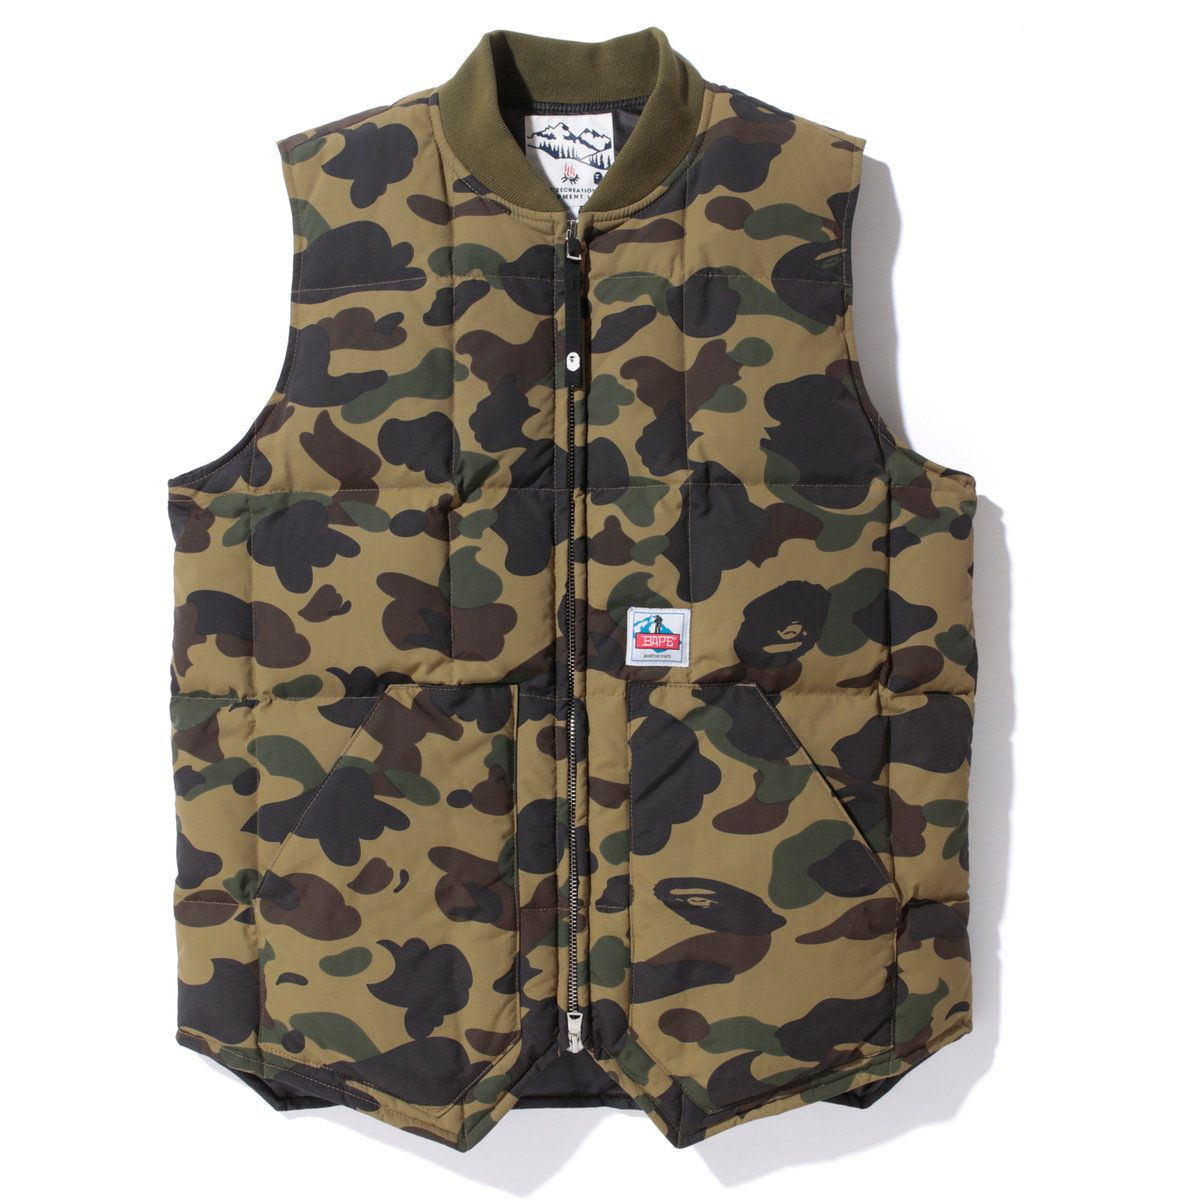 23c01e79b BAPE ® Camo Vest | SNEAKER FASHION RARE ITEM !!!! | A bathing ape ...